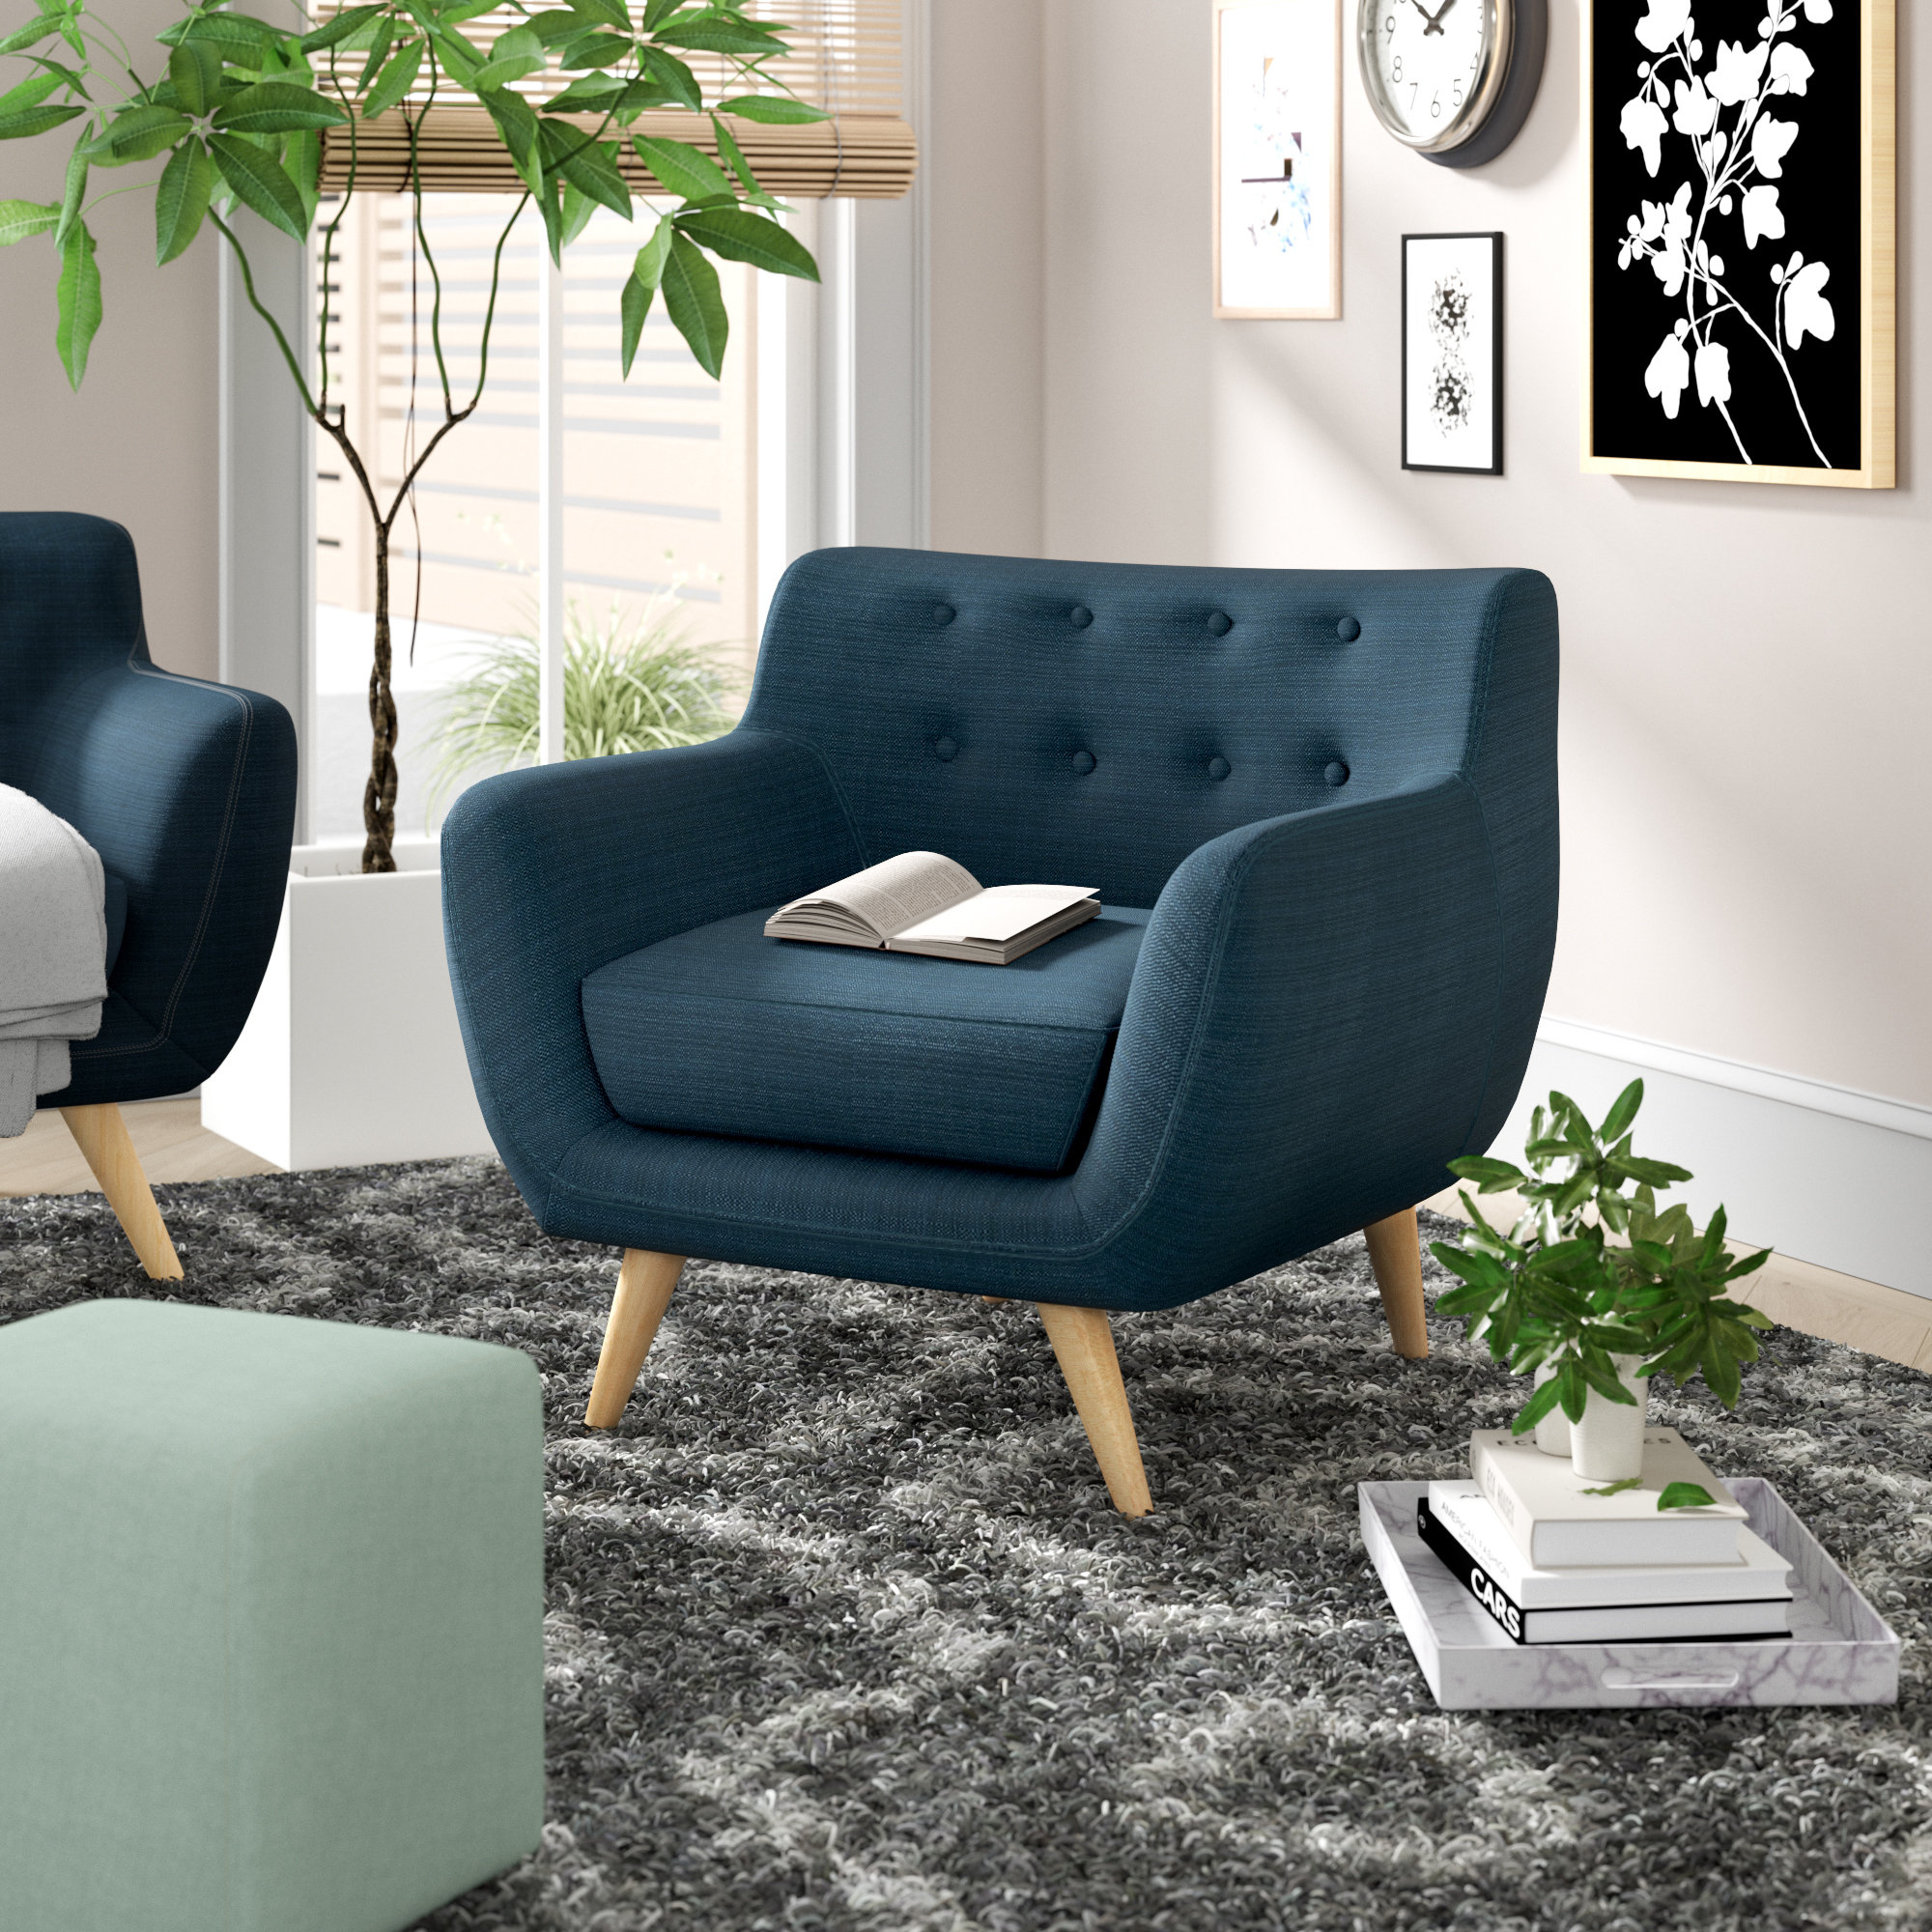 Langley Street Matteo Armchair & Reviews | Wayfair With Regard To Matteo Arm Sofa Chairs (Image 7 of 25)